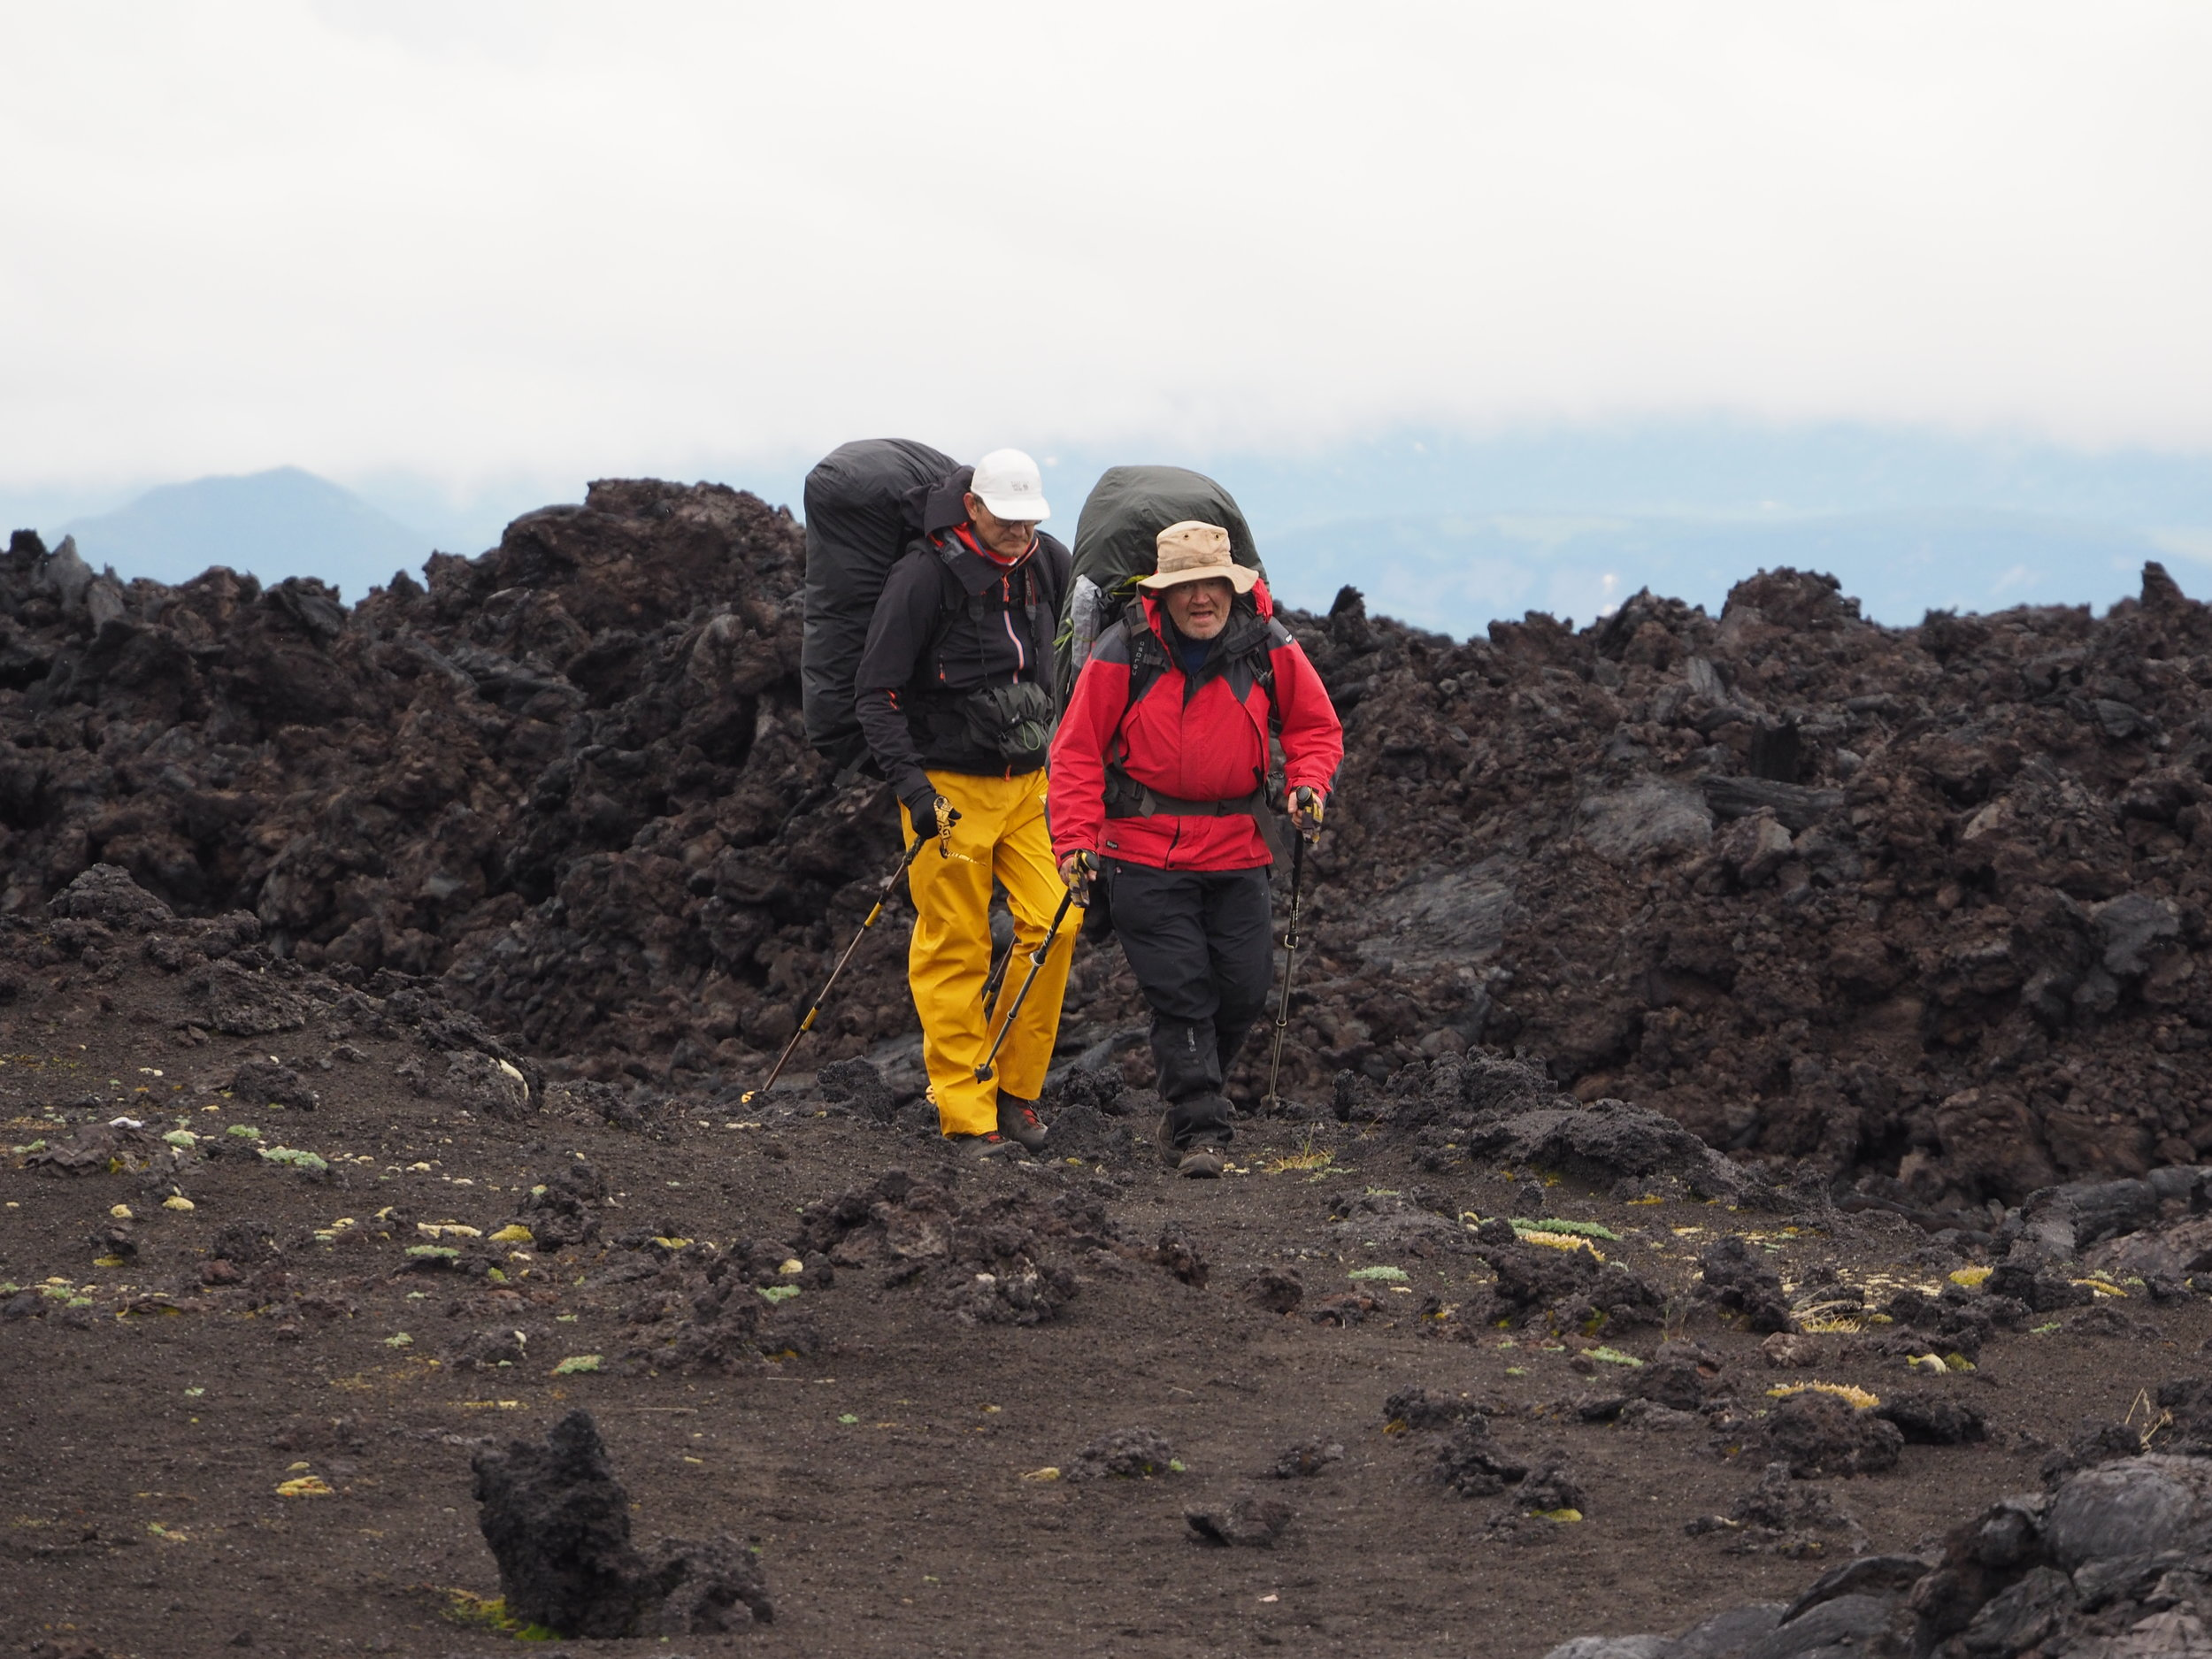 Negotiating the extensive lava fields. Photo by Evgeny Androssov.